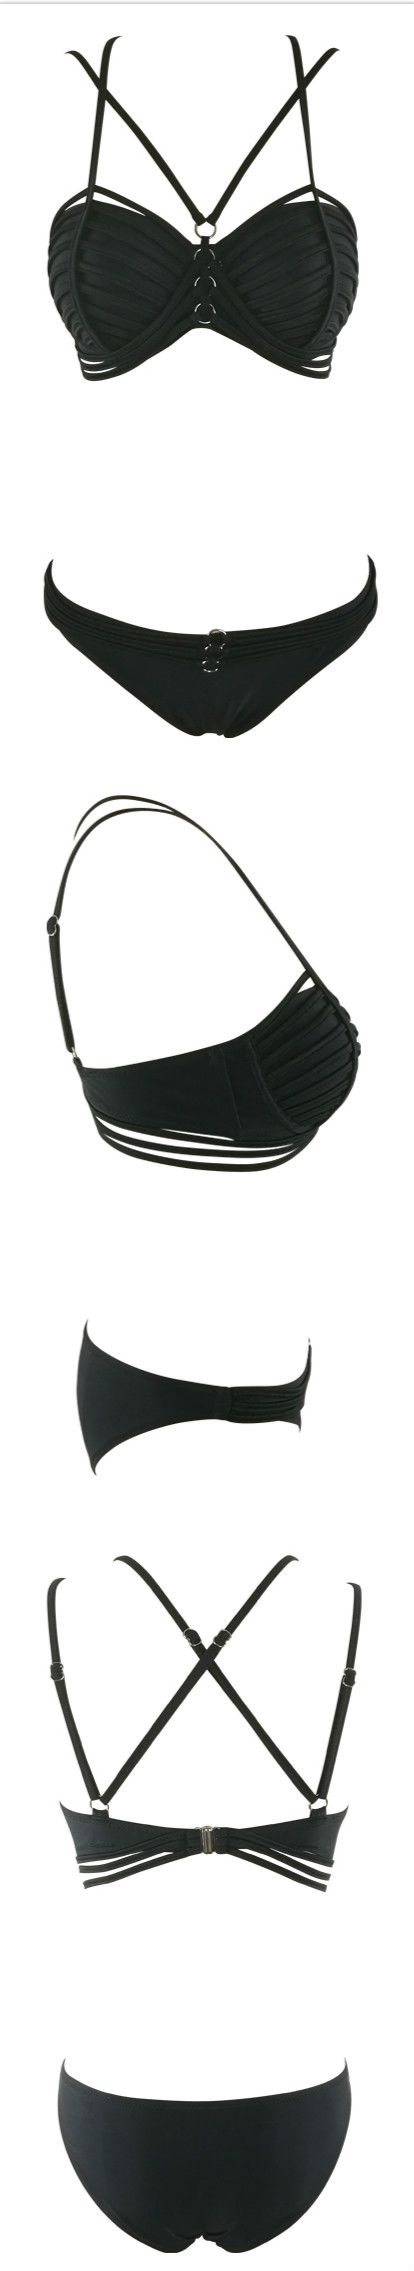 Sleek and sassy, this Color Block Strappy Bikini gives you the silhouette you crave. More surprise at AZBRO.com